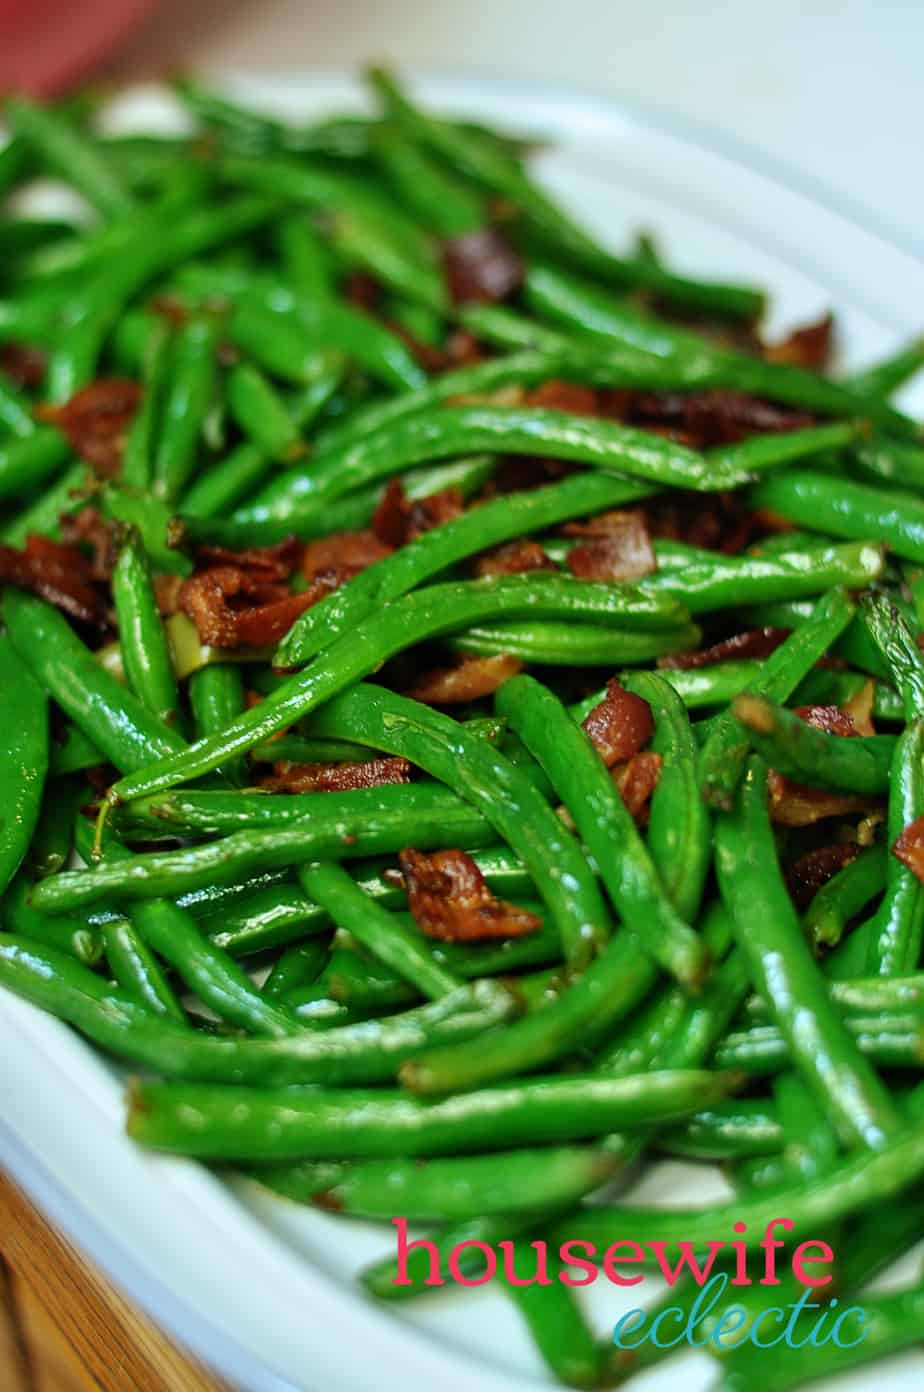 Housewife Eclectic: Green Beans and Bacon